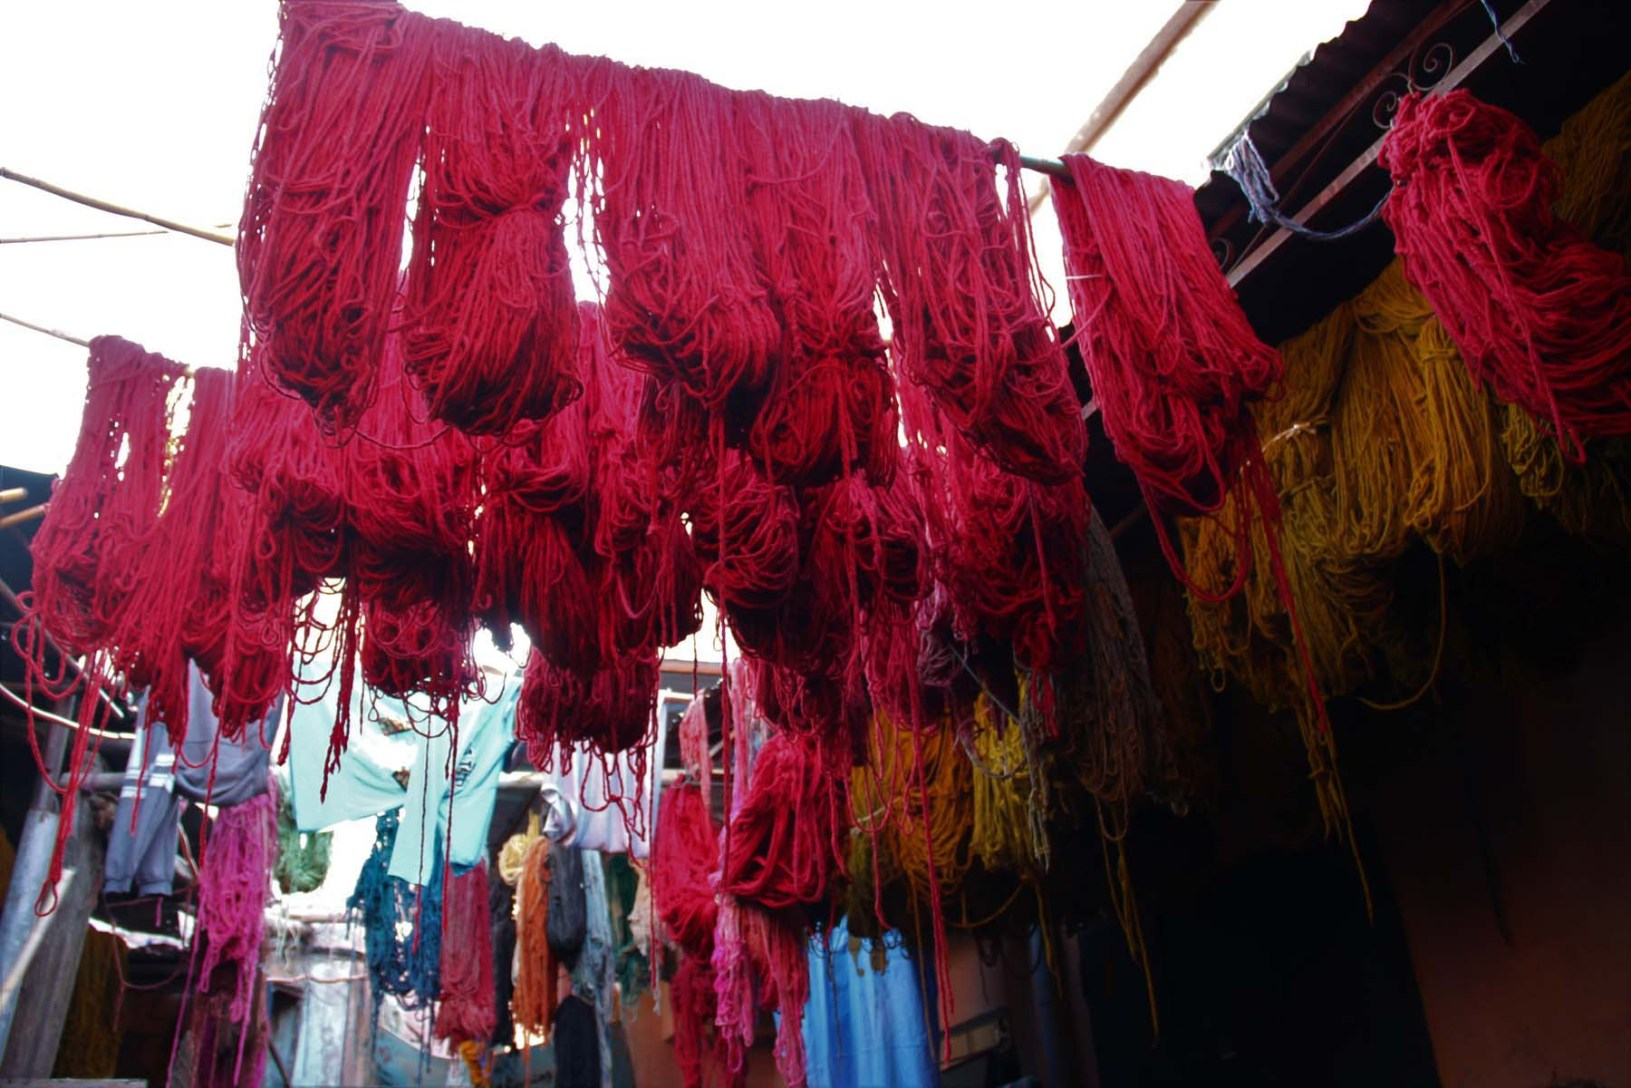 Fibers drying out in Marrakech Dyers souk